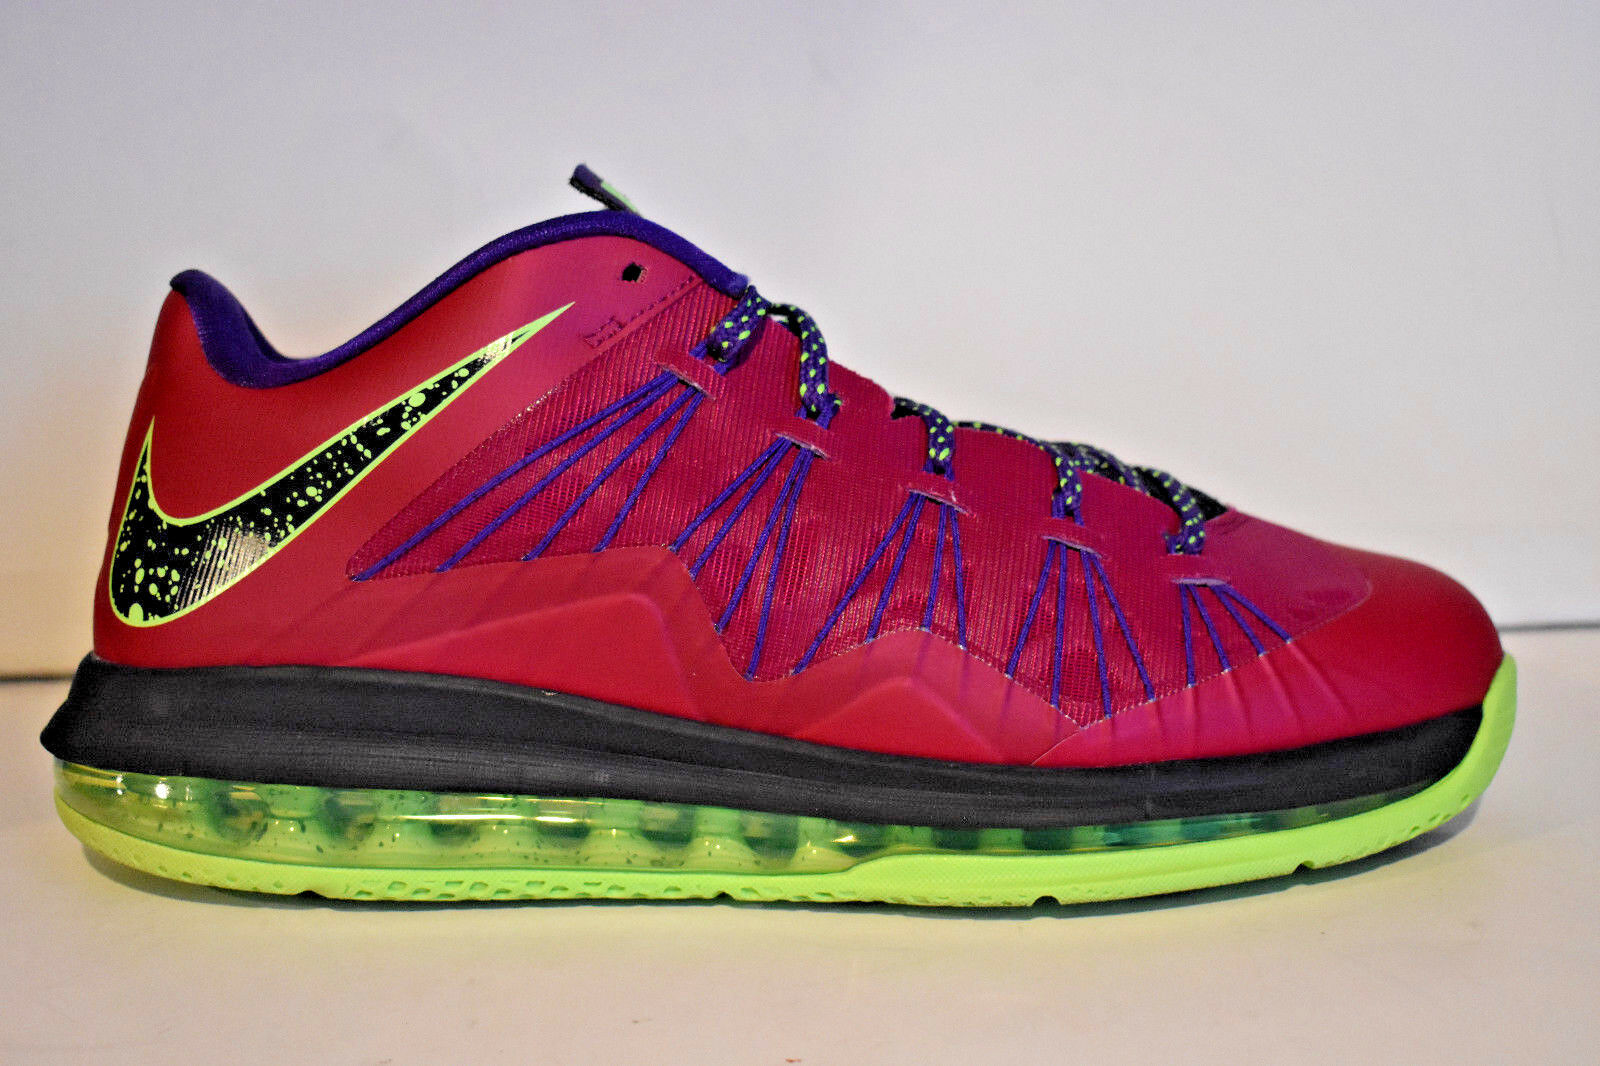 165 NIKE AIR MAX LEBRON X 10 LOW RASPBERRY LIME GREEN 10.5 579765-601 DUNKMAN